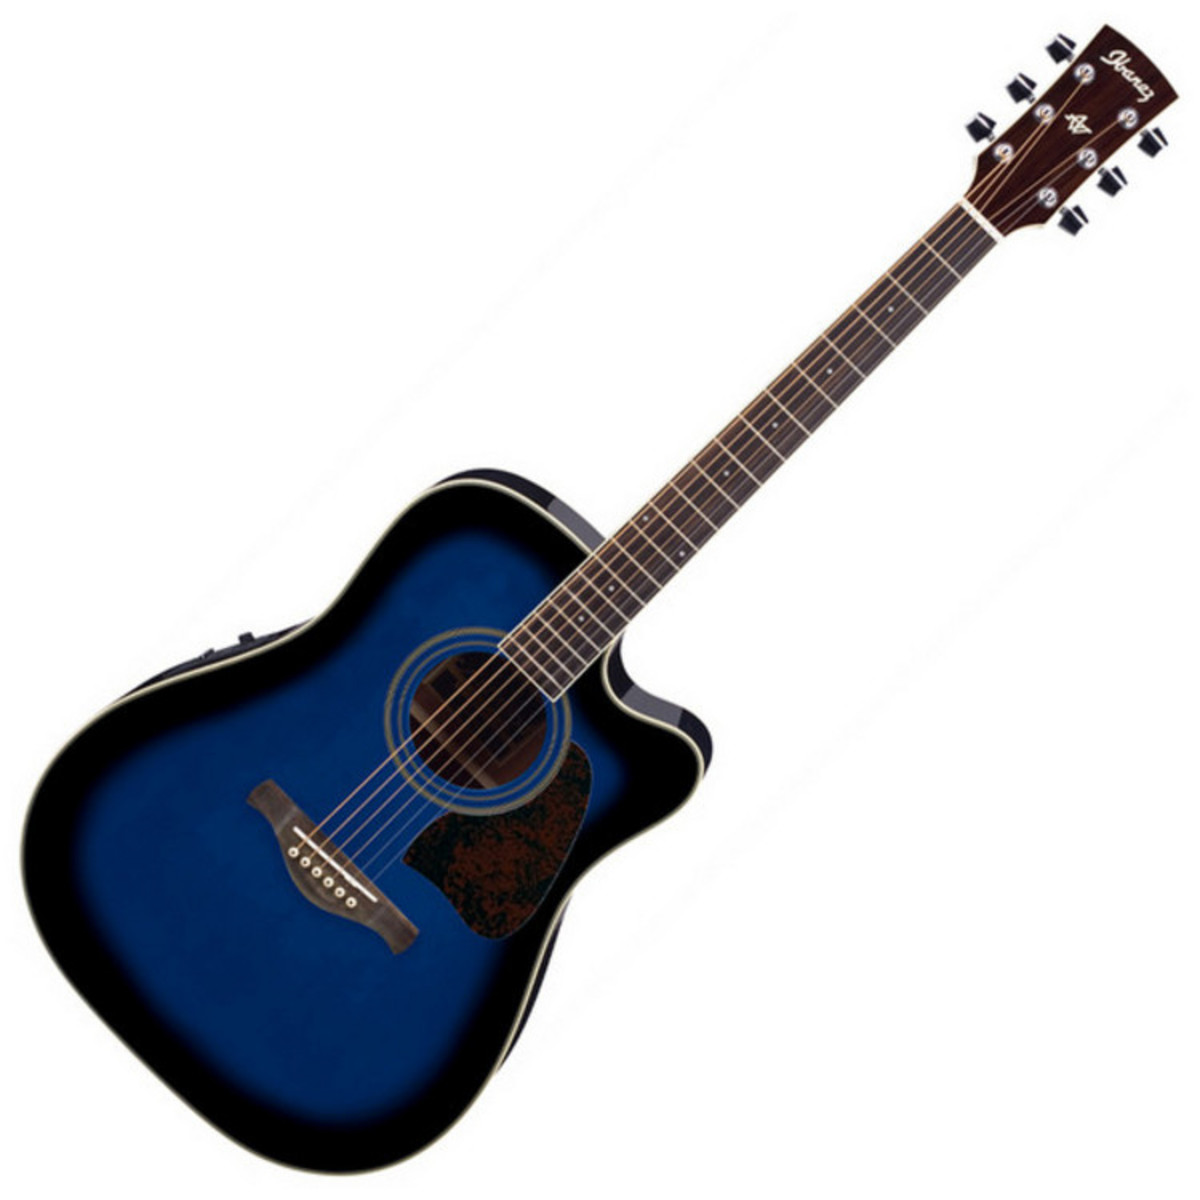 ibanez aw70 guitare lectro acoustique trans blue burst. Black Bedroom Furniture Sets. Home Design Ideas